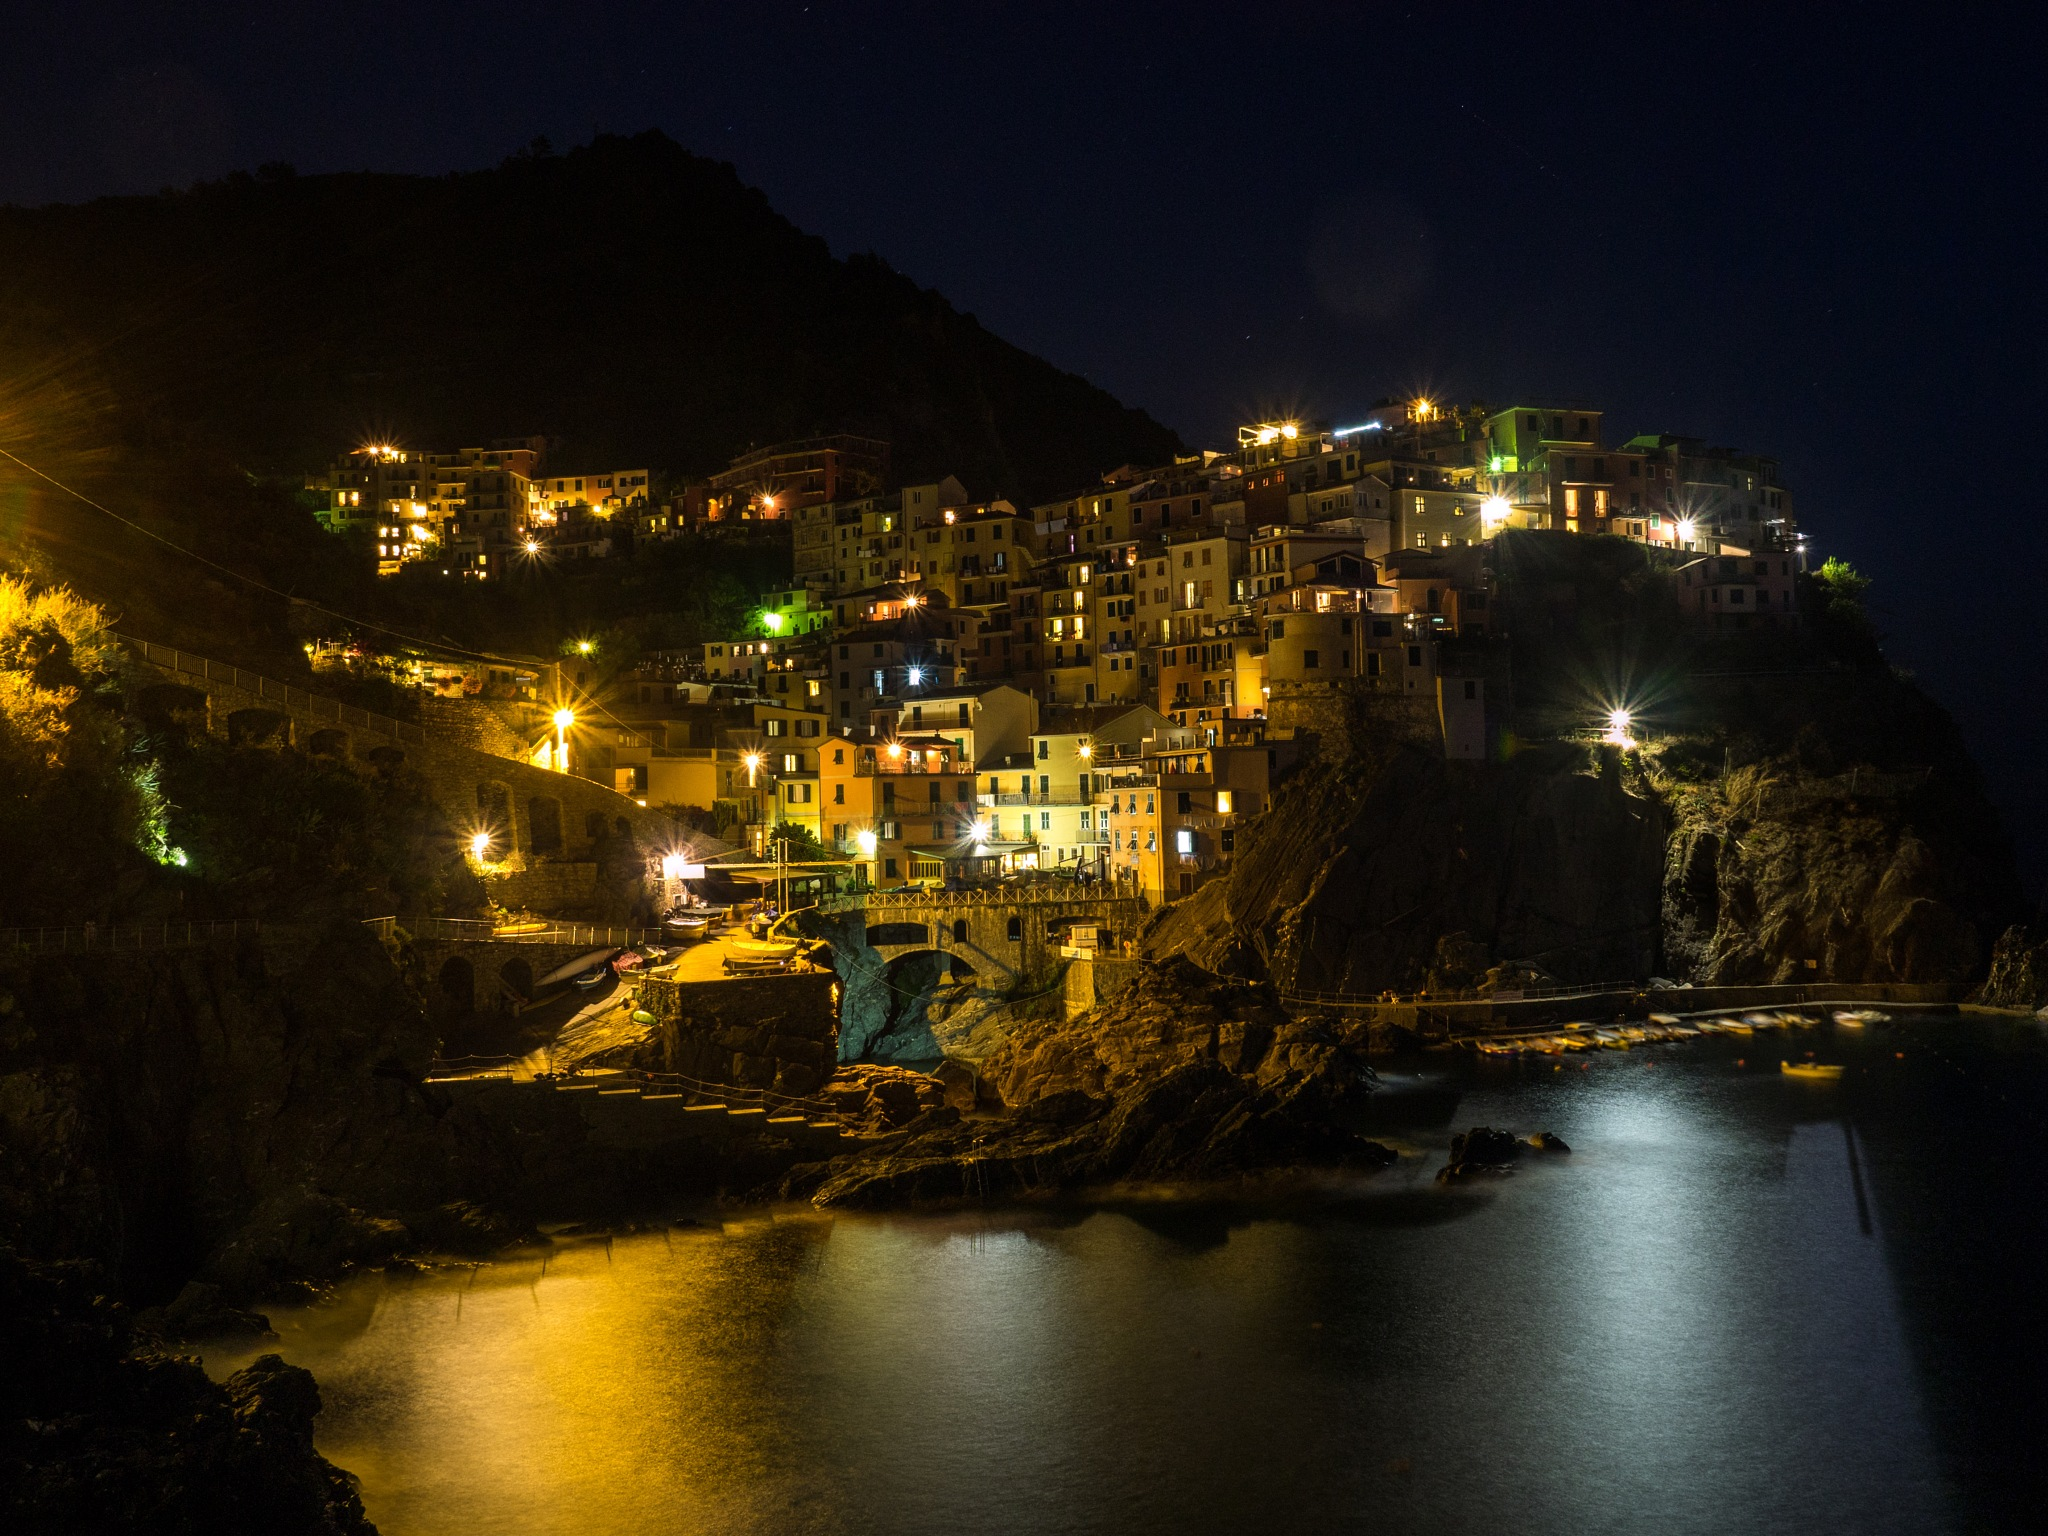 Manarola - Cinque Terre at night by Werner Hofmann